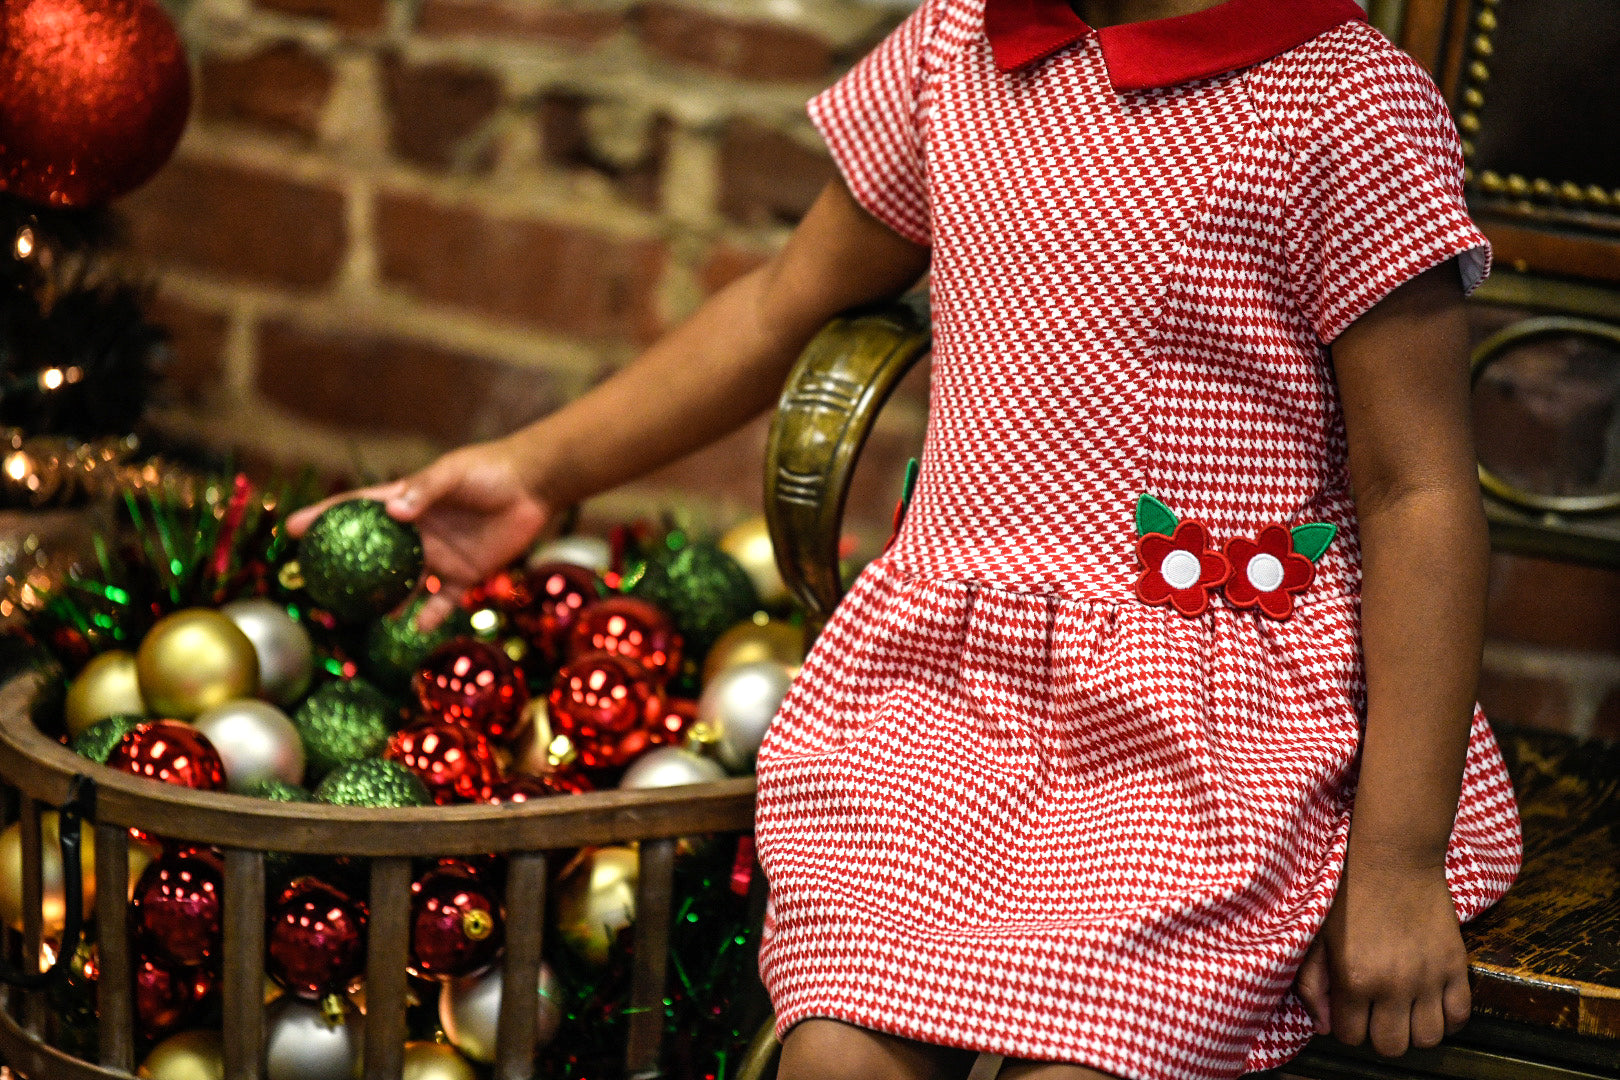 young girl in red houndstooth dress with flower appliqués selecting an ornament